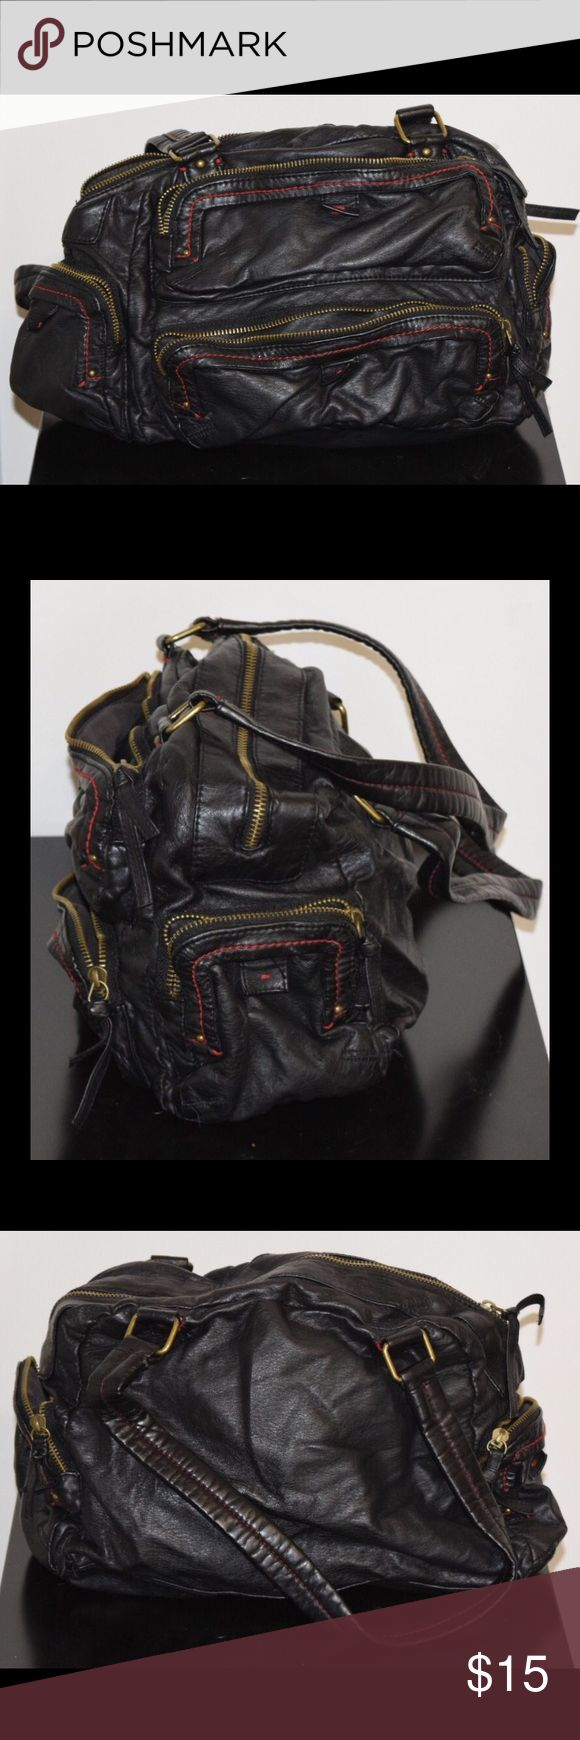 """Converse Black Faux Leather Purse Stylish with storage! Soft faux leather slouchy black handbag with zippered pockets. Zippered inside pocket, with roomy zippered pockets on front and sides. Red stitching. Like new. Approx 12"""" L, 9"""" H Converse Bags Satchels"""